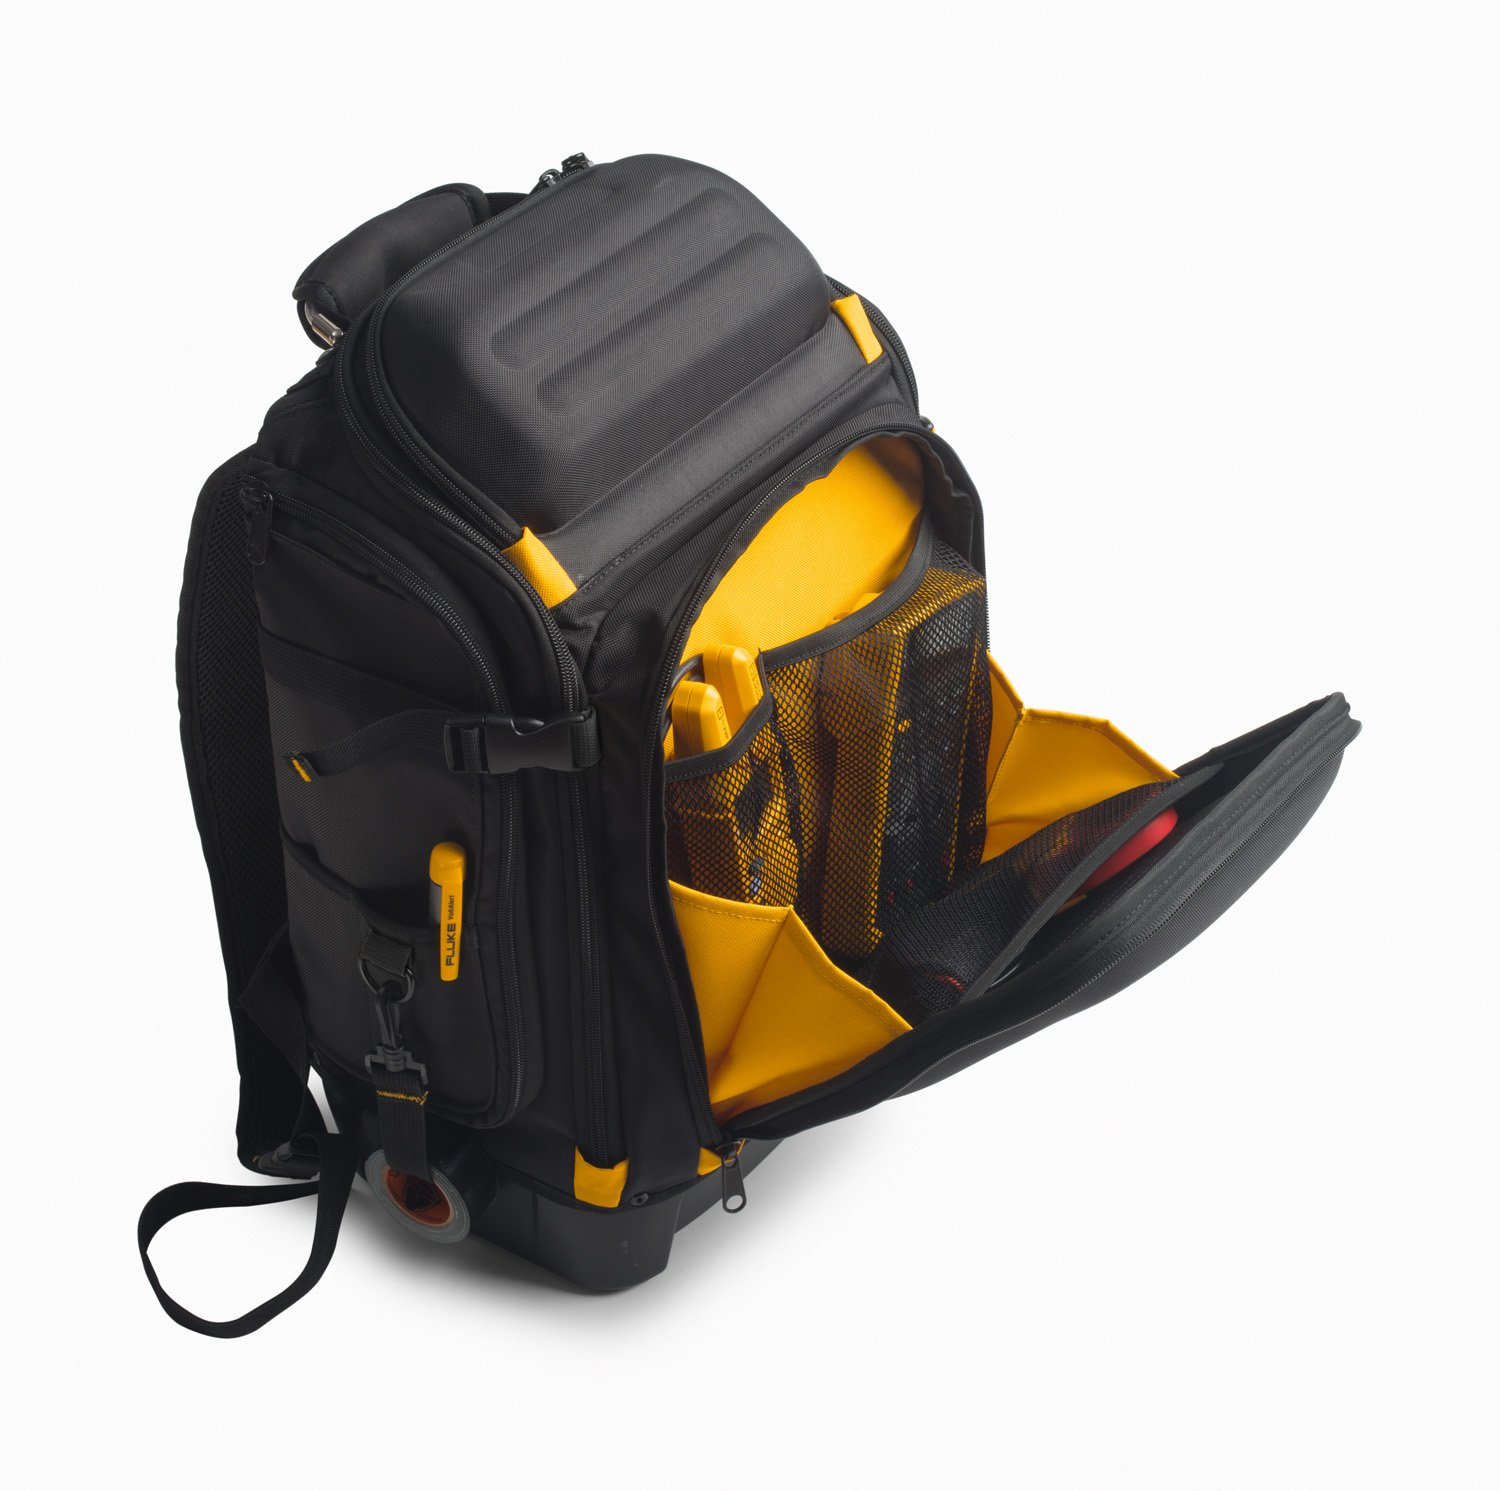 Fluke Pack30 Professional Tool Backpack: Amazon.com: Industrial & Scientific